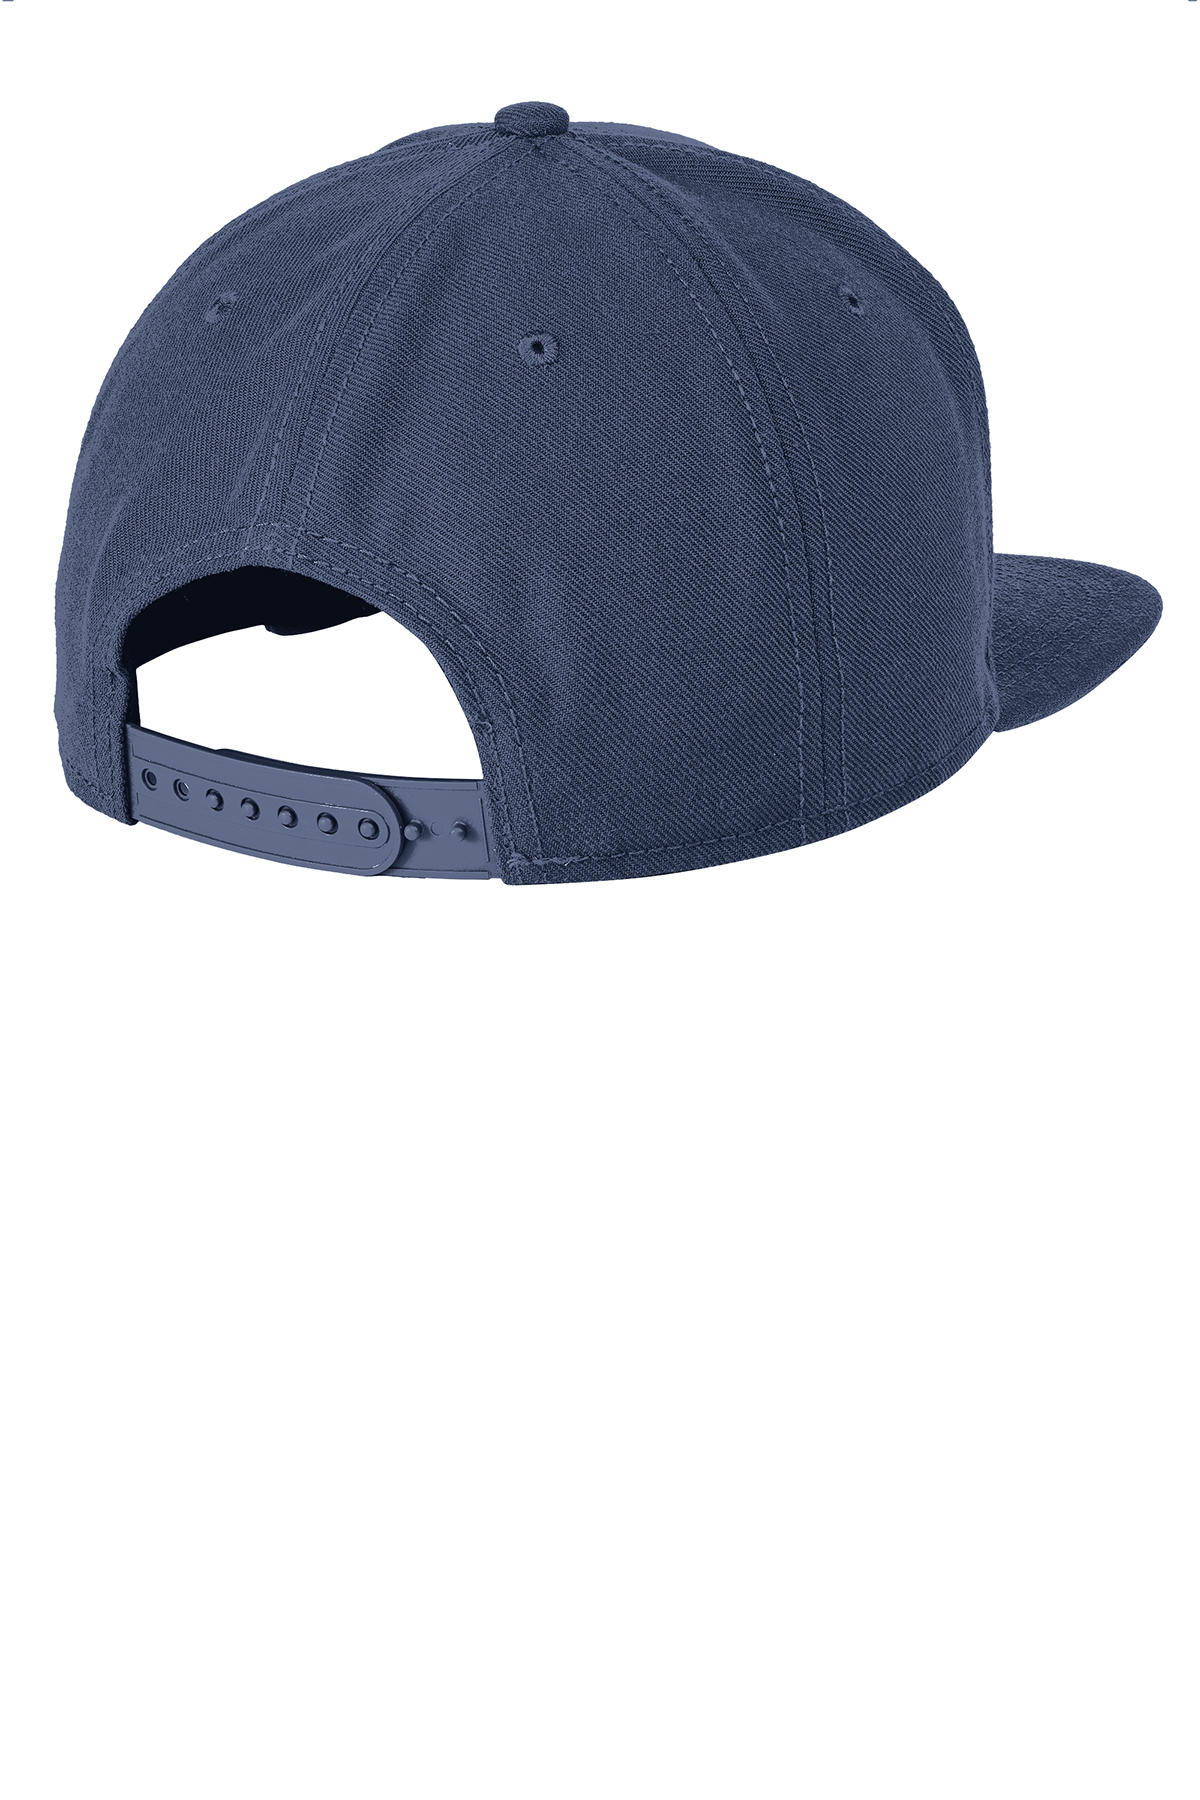 e8159f67e0630 ... New Era® Original Fit Flat Bill Snapback Cap. A maximum of 8 logos have  been uploaded. Please remove a logo from My Logos to continue